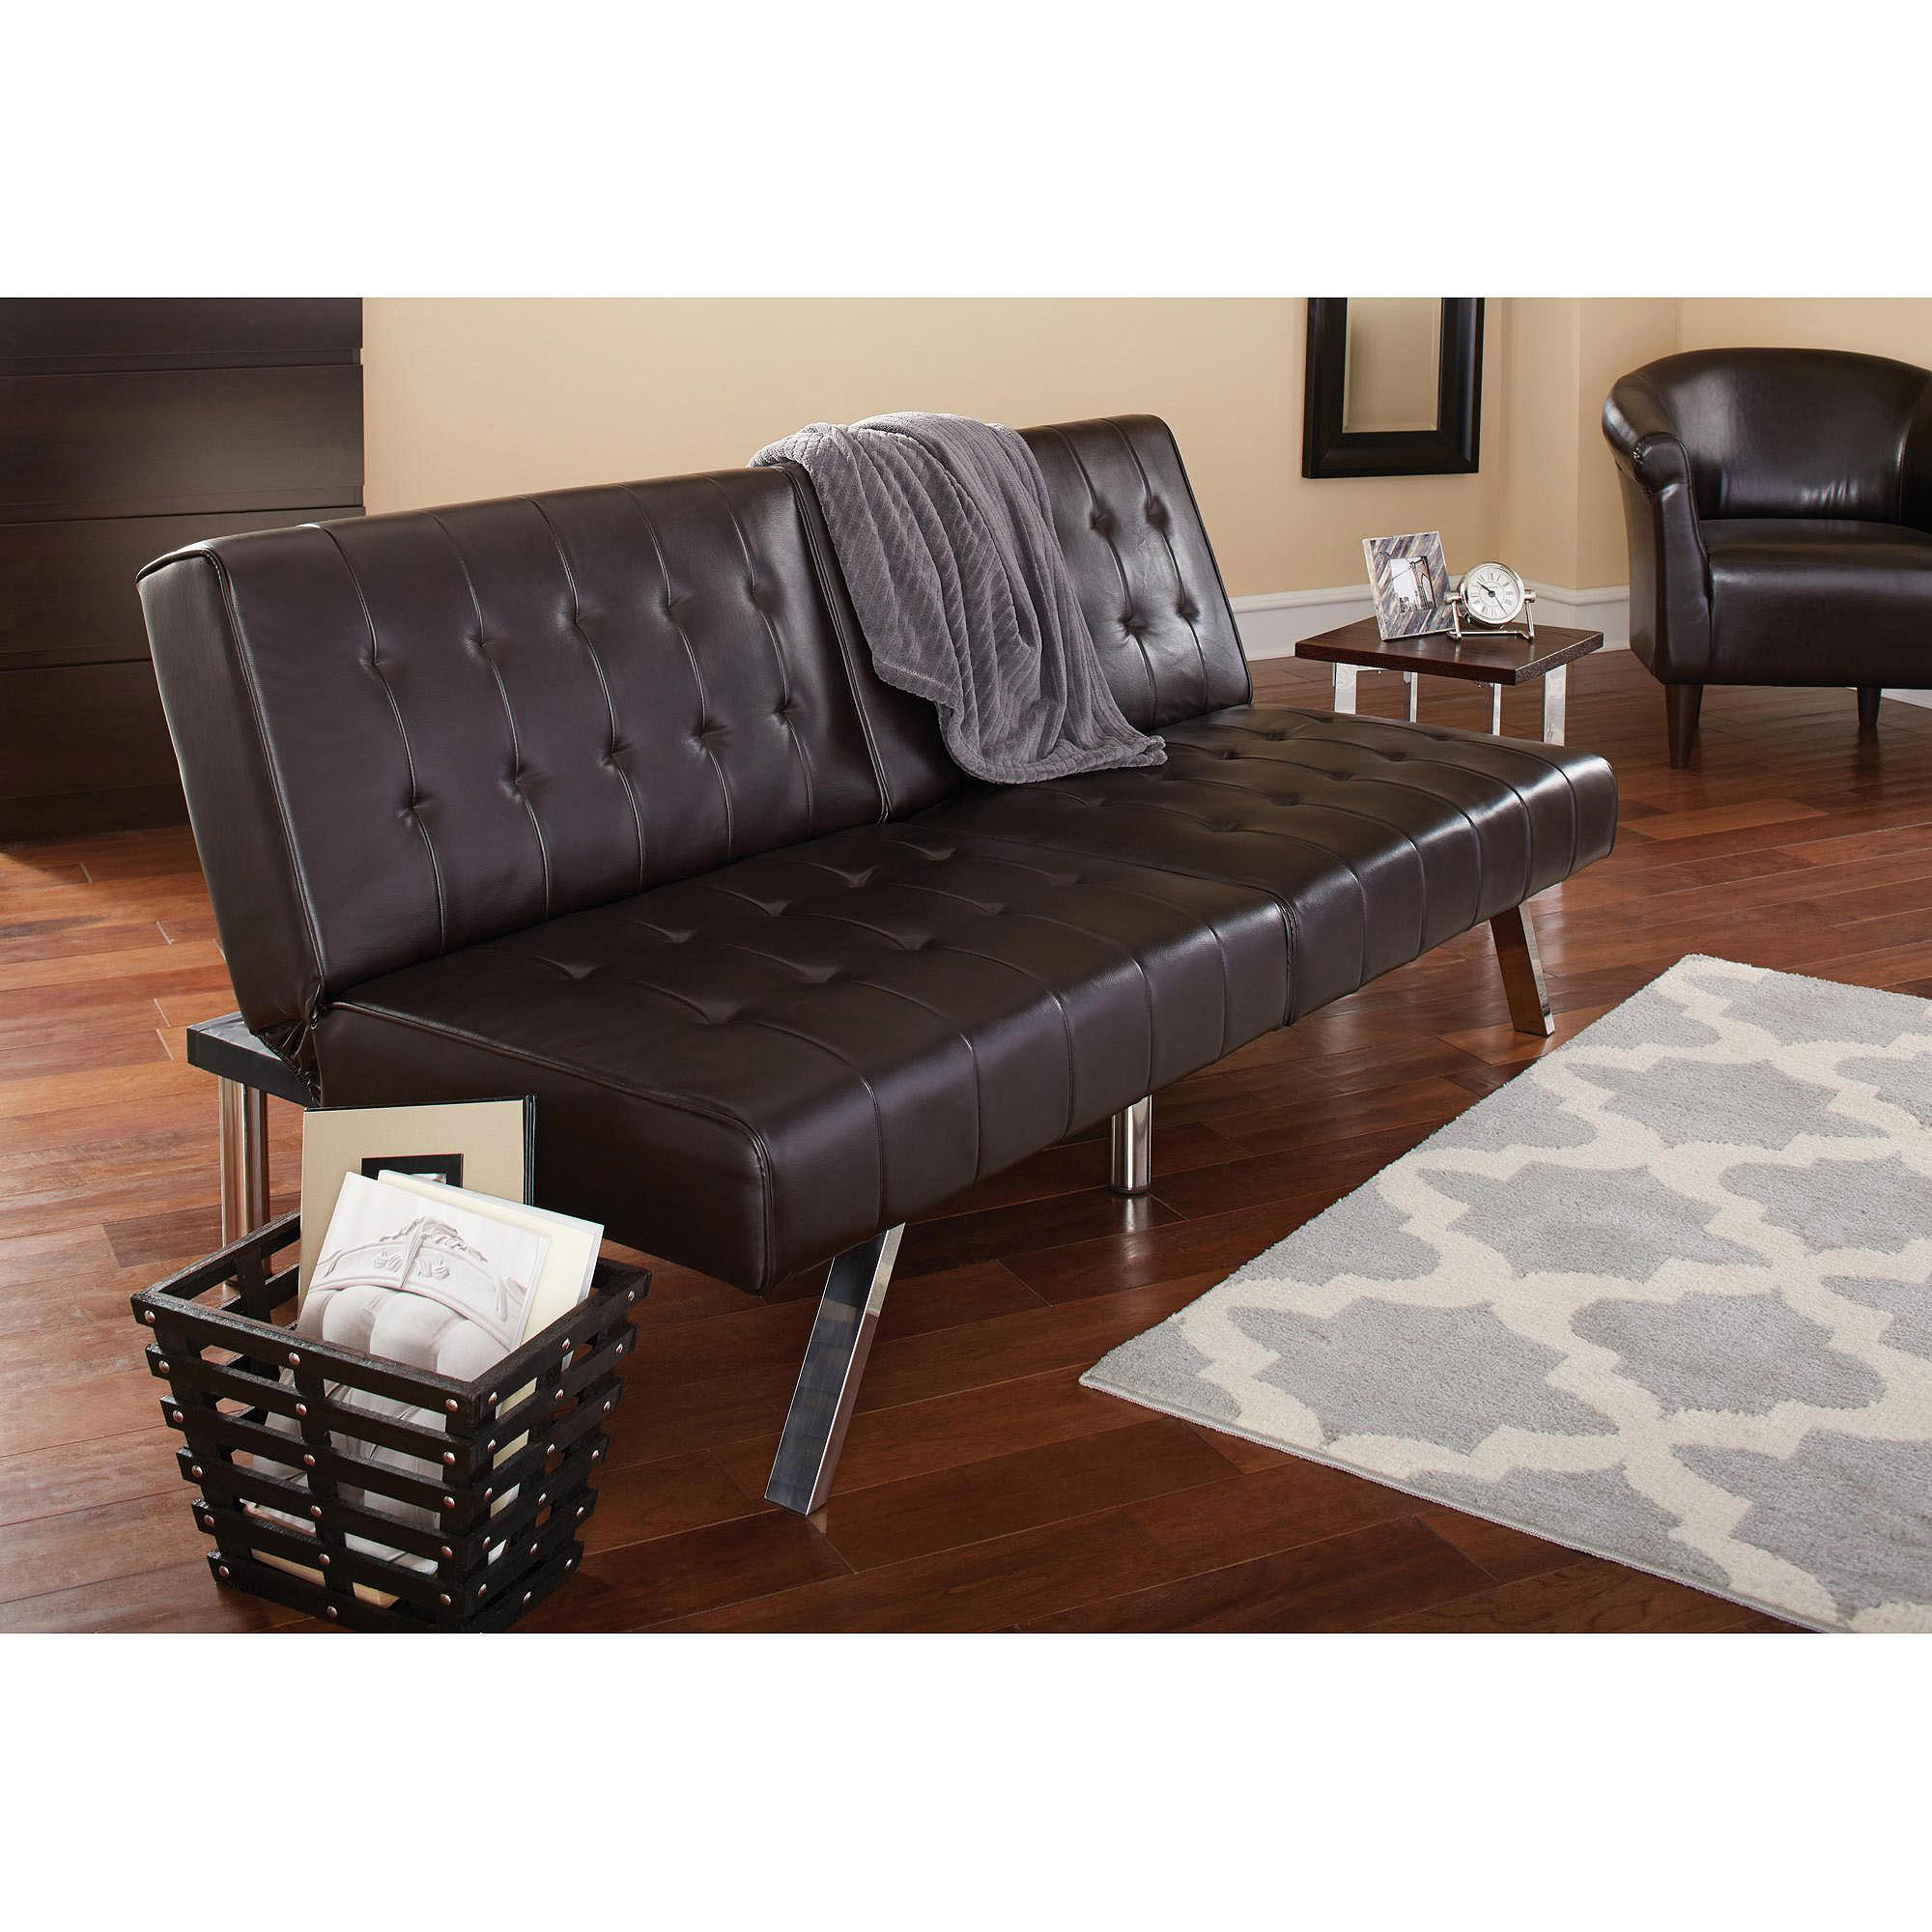 mainstays faux leather tufted convertible futon brown  ebay - w